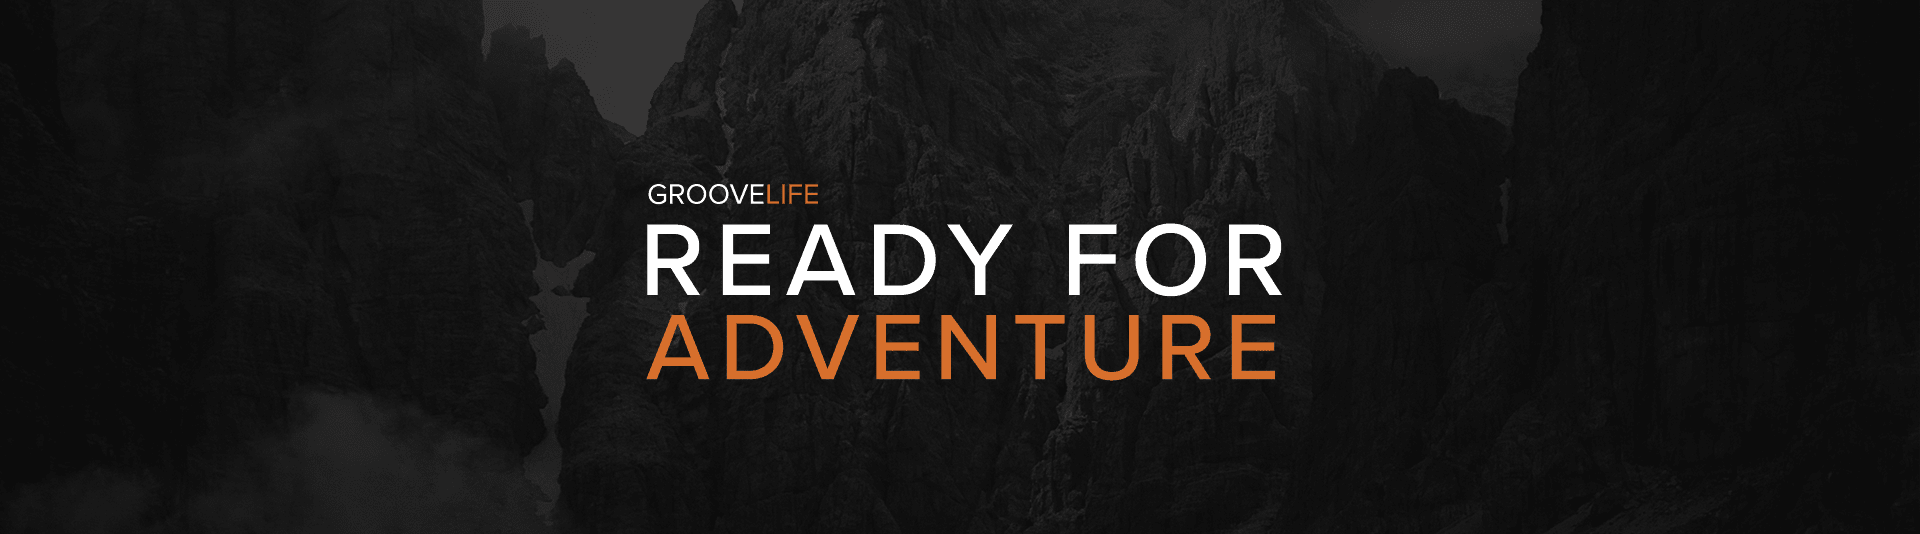 Ready For Adventure, mountains background